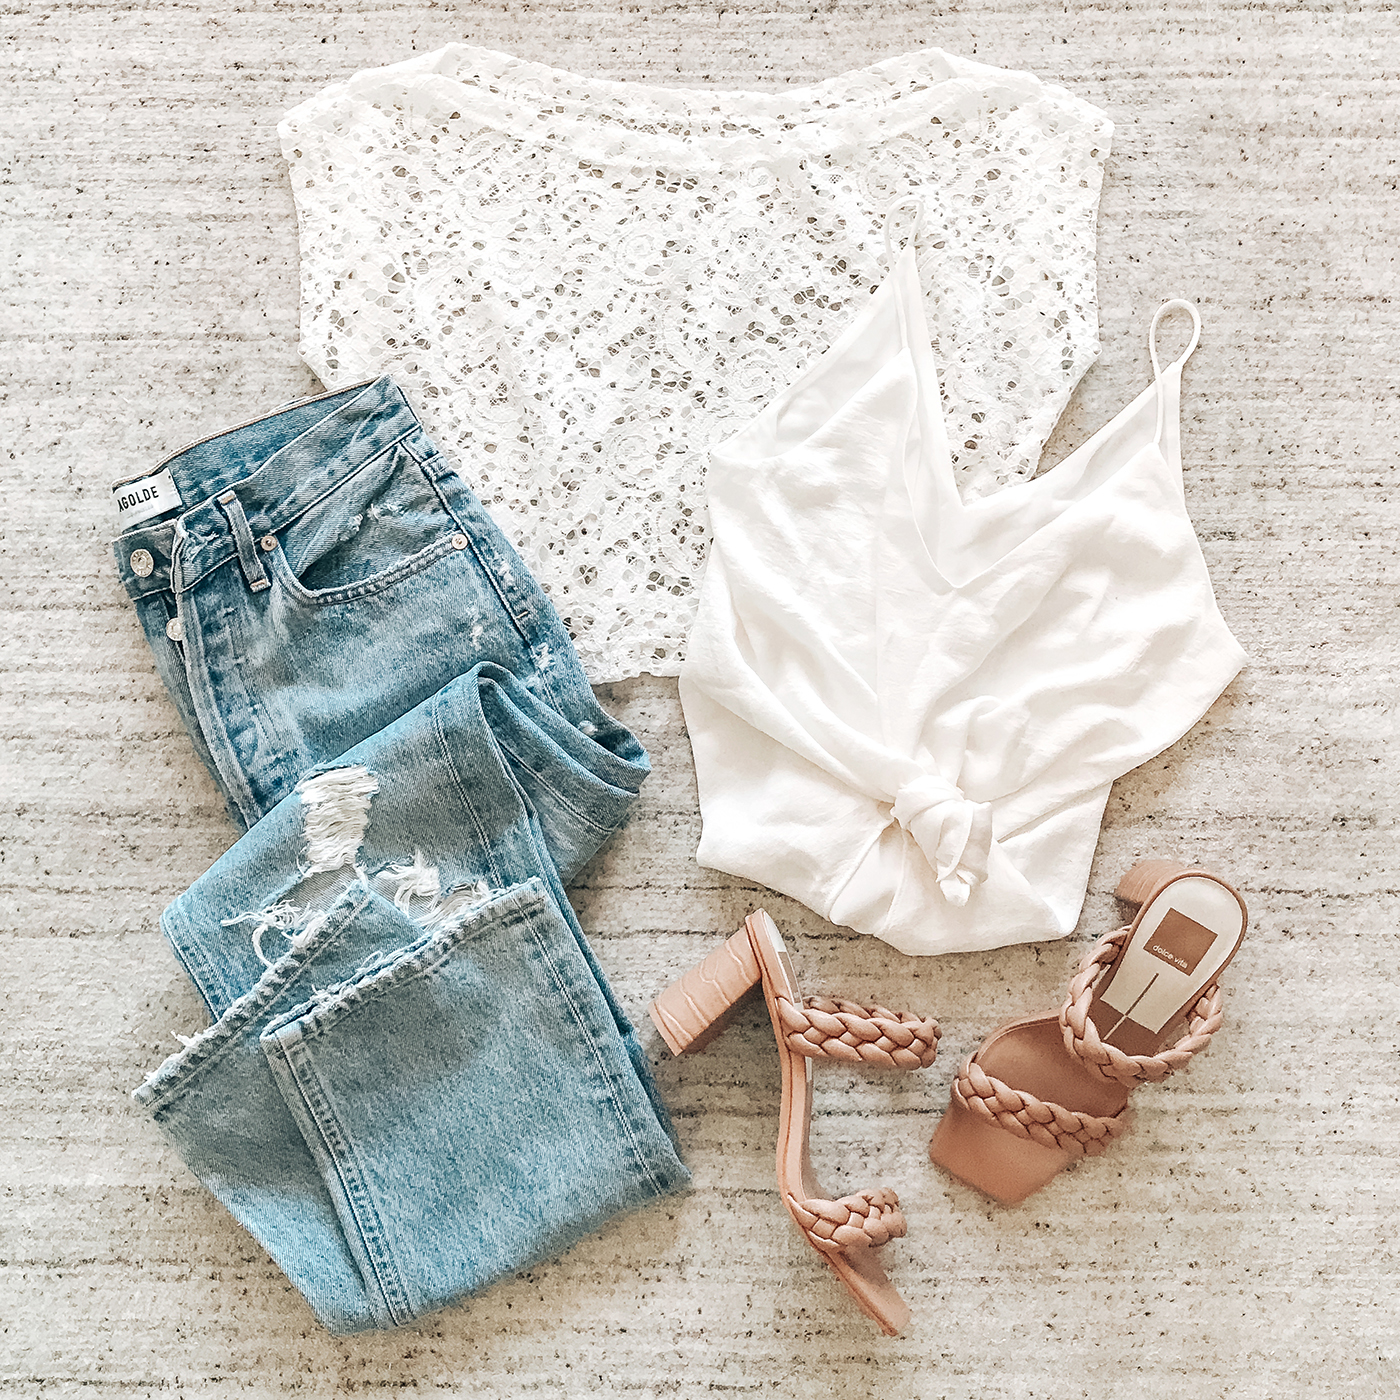 lace top, 90s loose fit jeans, braided dolce vita sandals, spring trends 2021